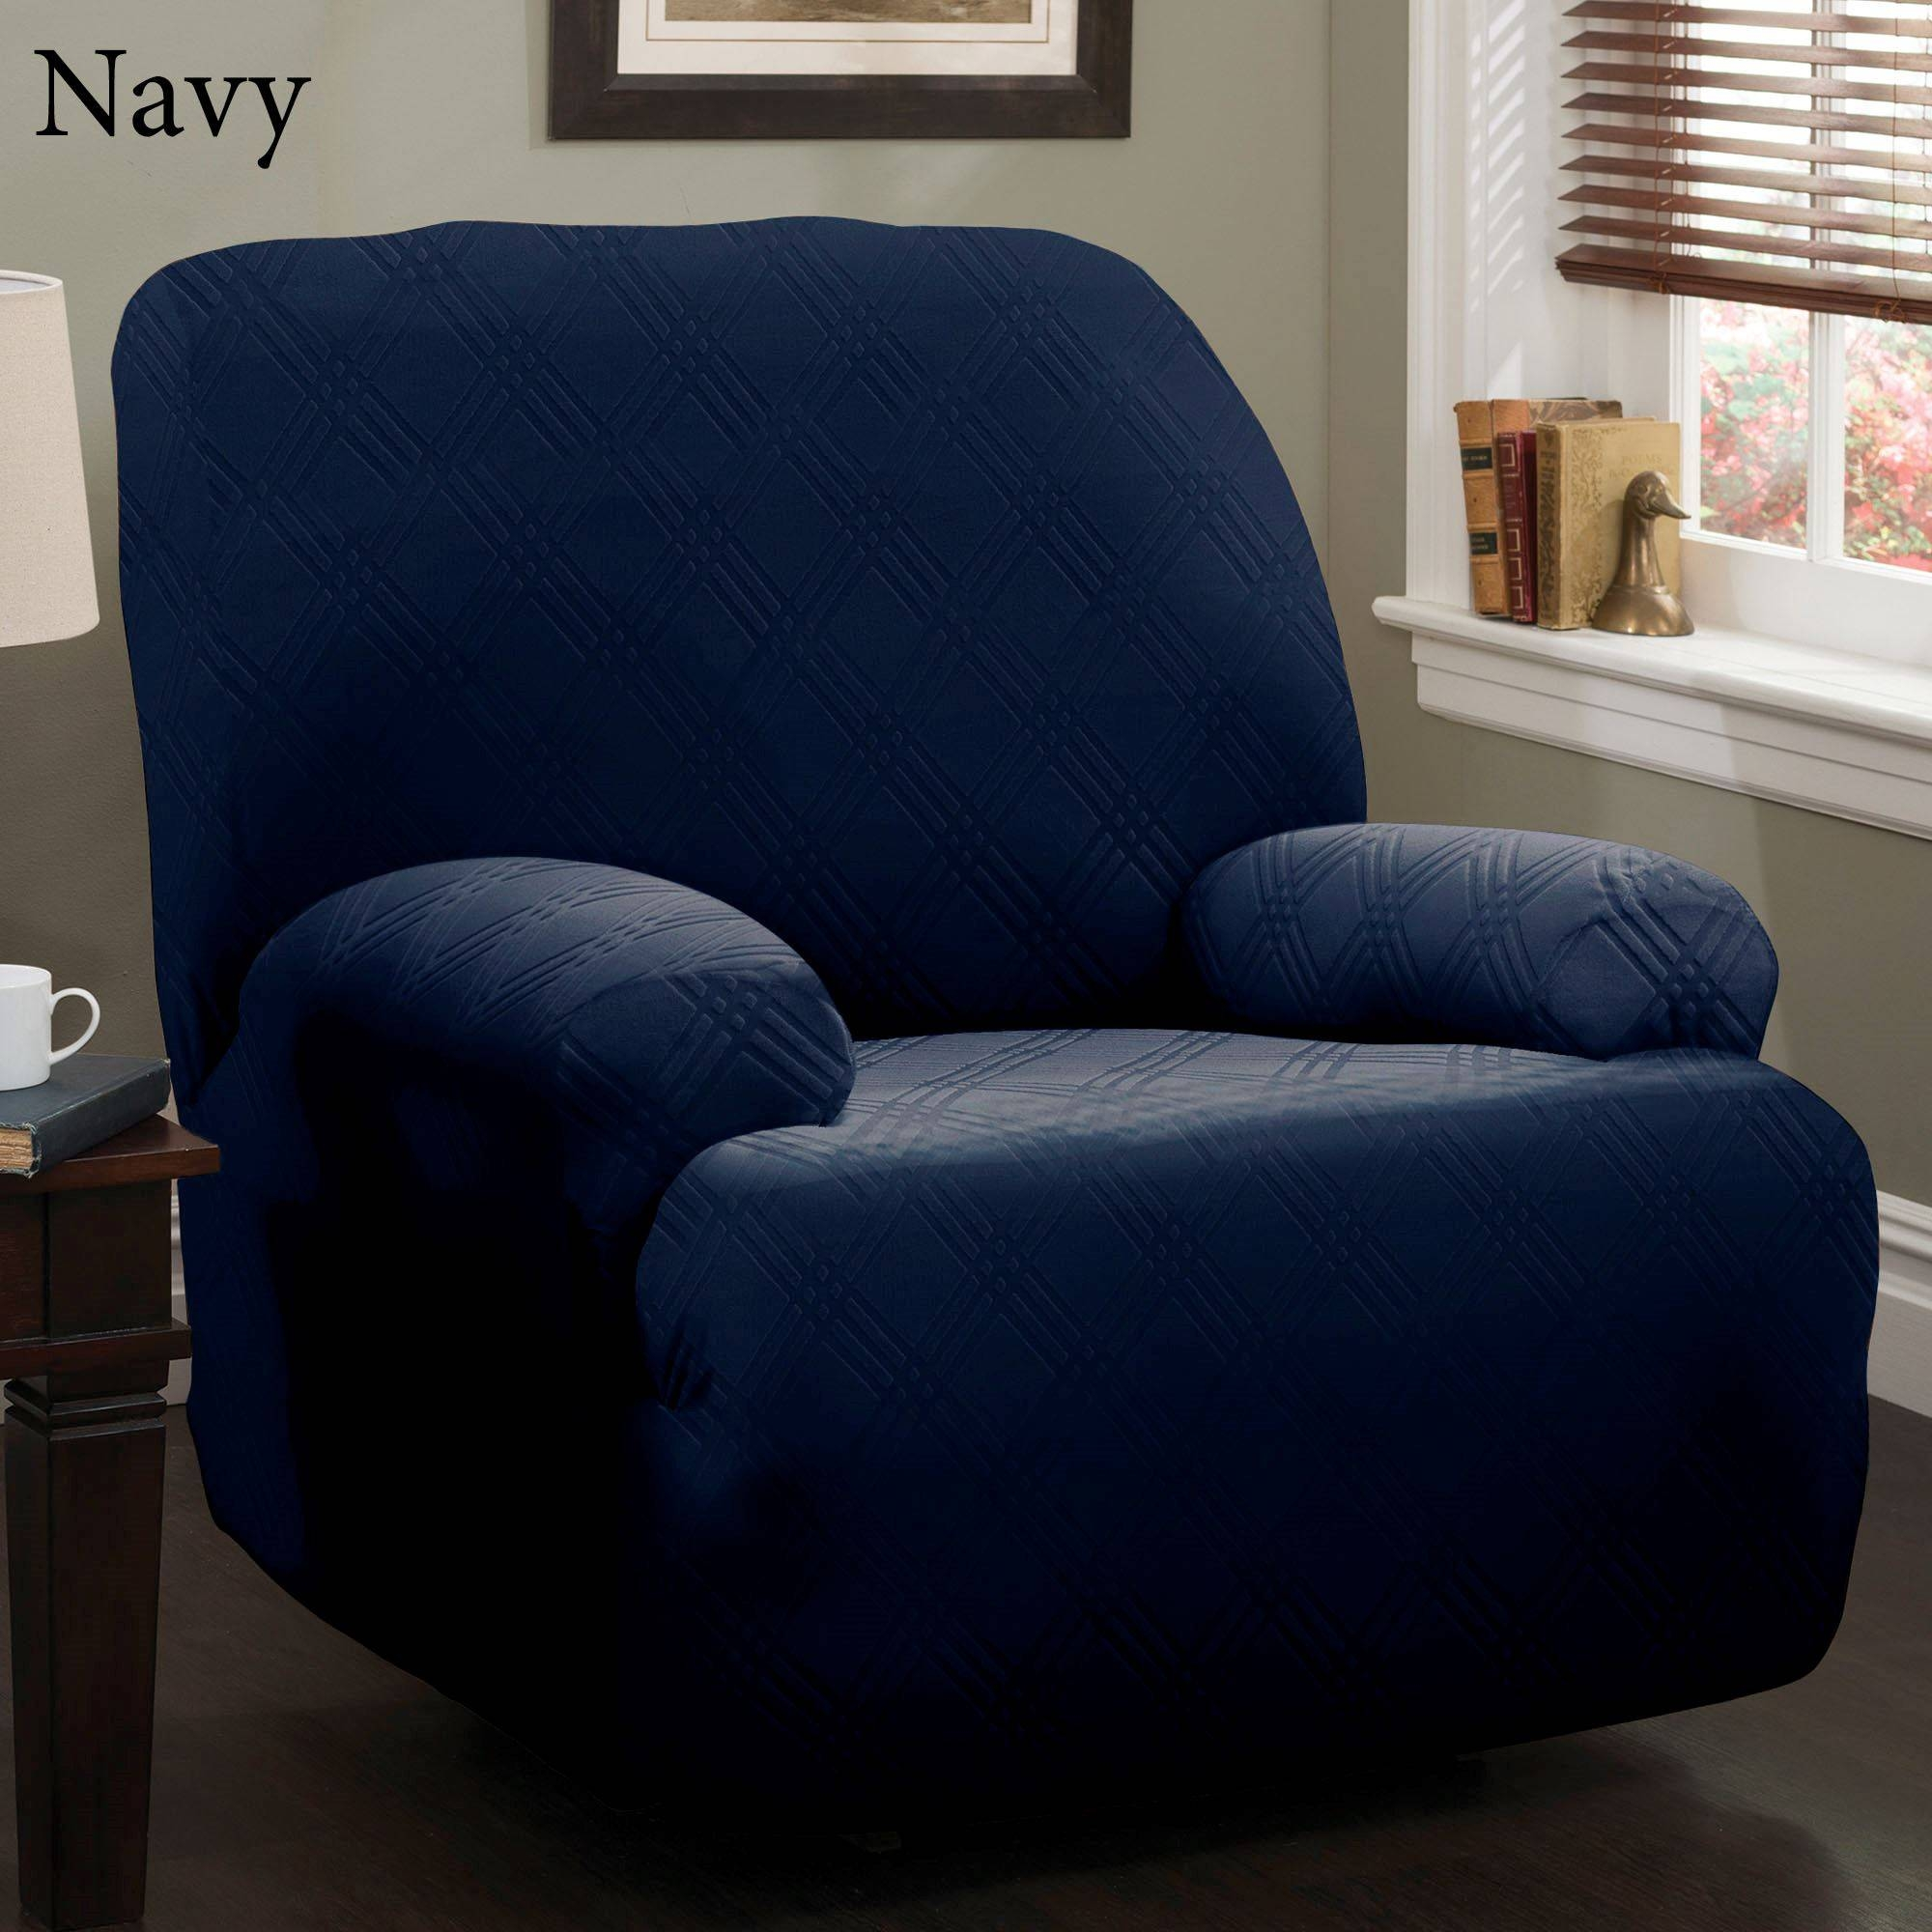 Double Diamond Stretch Jumbo Recliner Slipcovers with Navy Blue Slipcovers (Image 2 of 15)